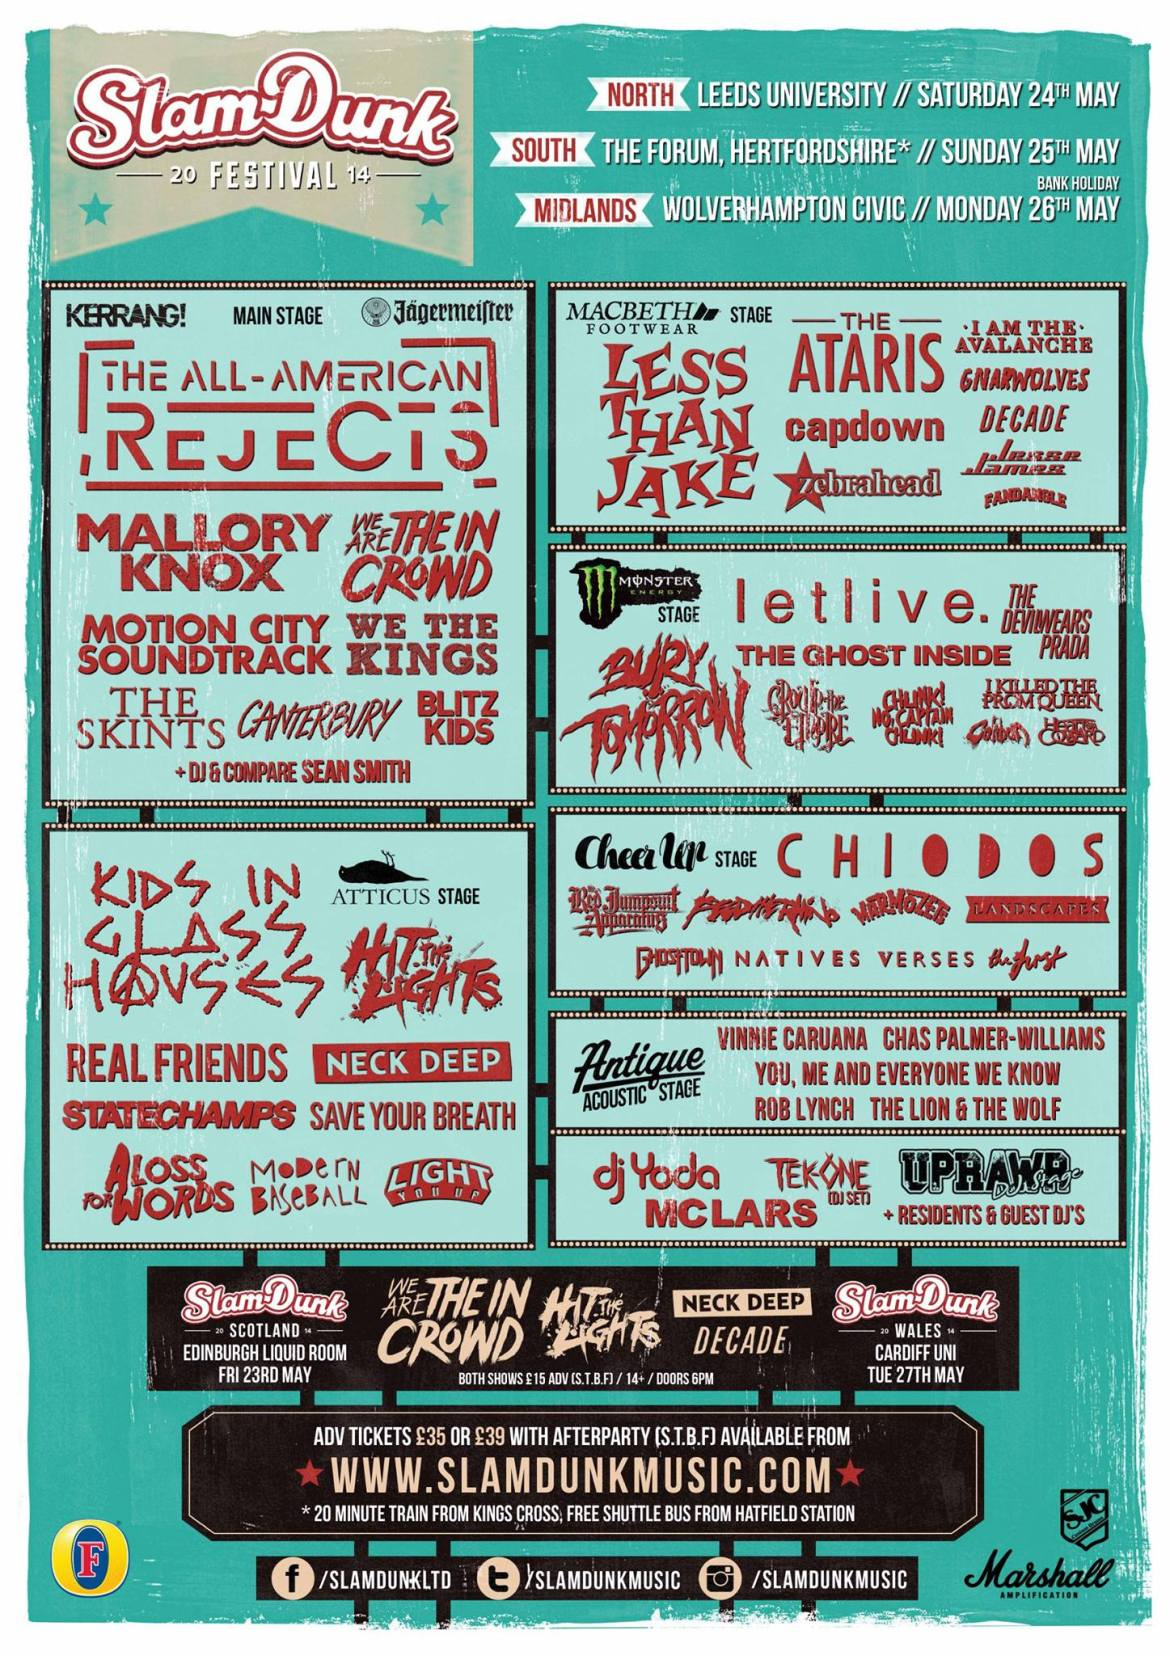 SLAM DUNK FESTIVAL Announces More Acts And Competition